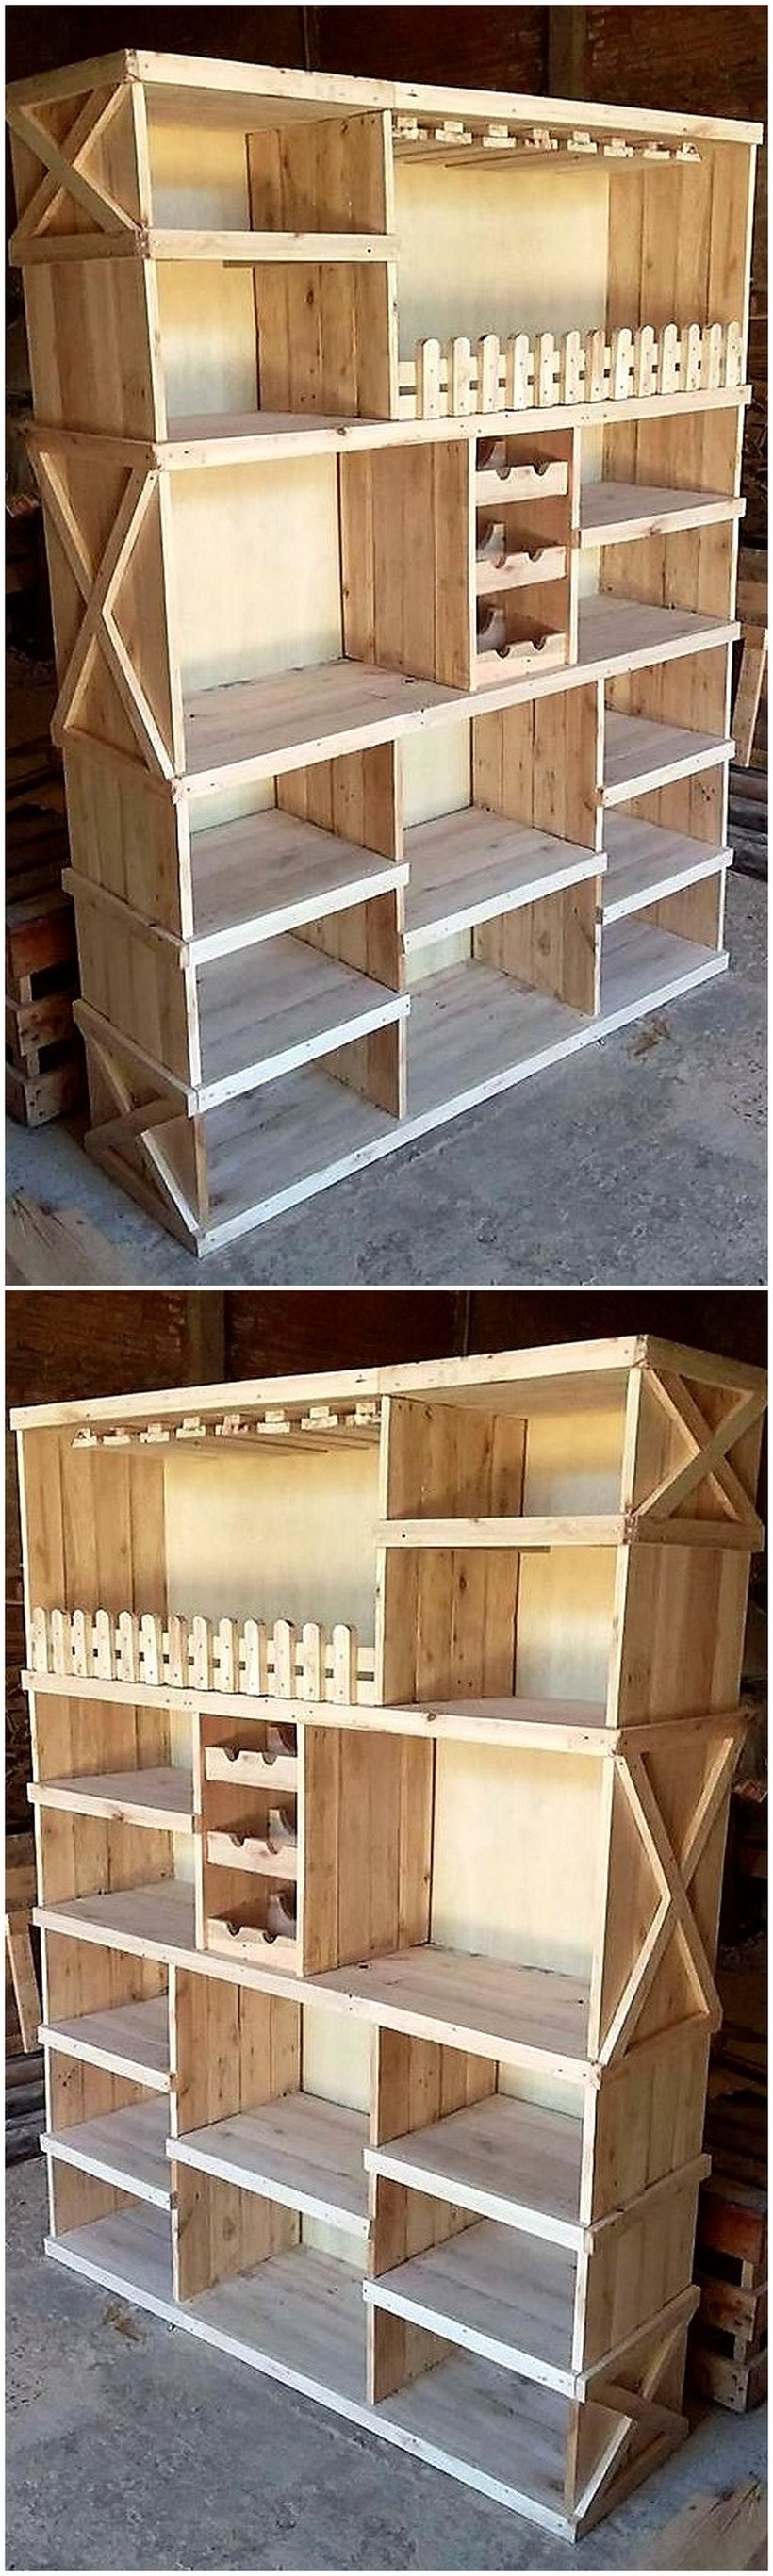 old pallet cupboard